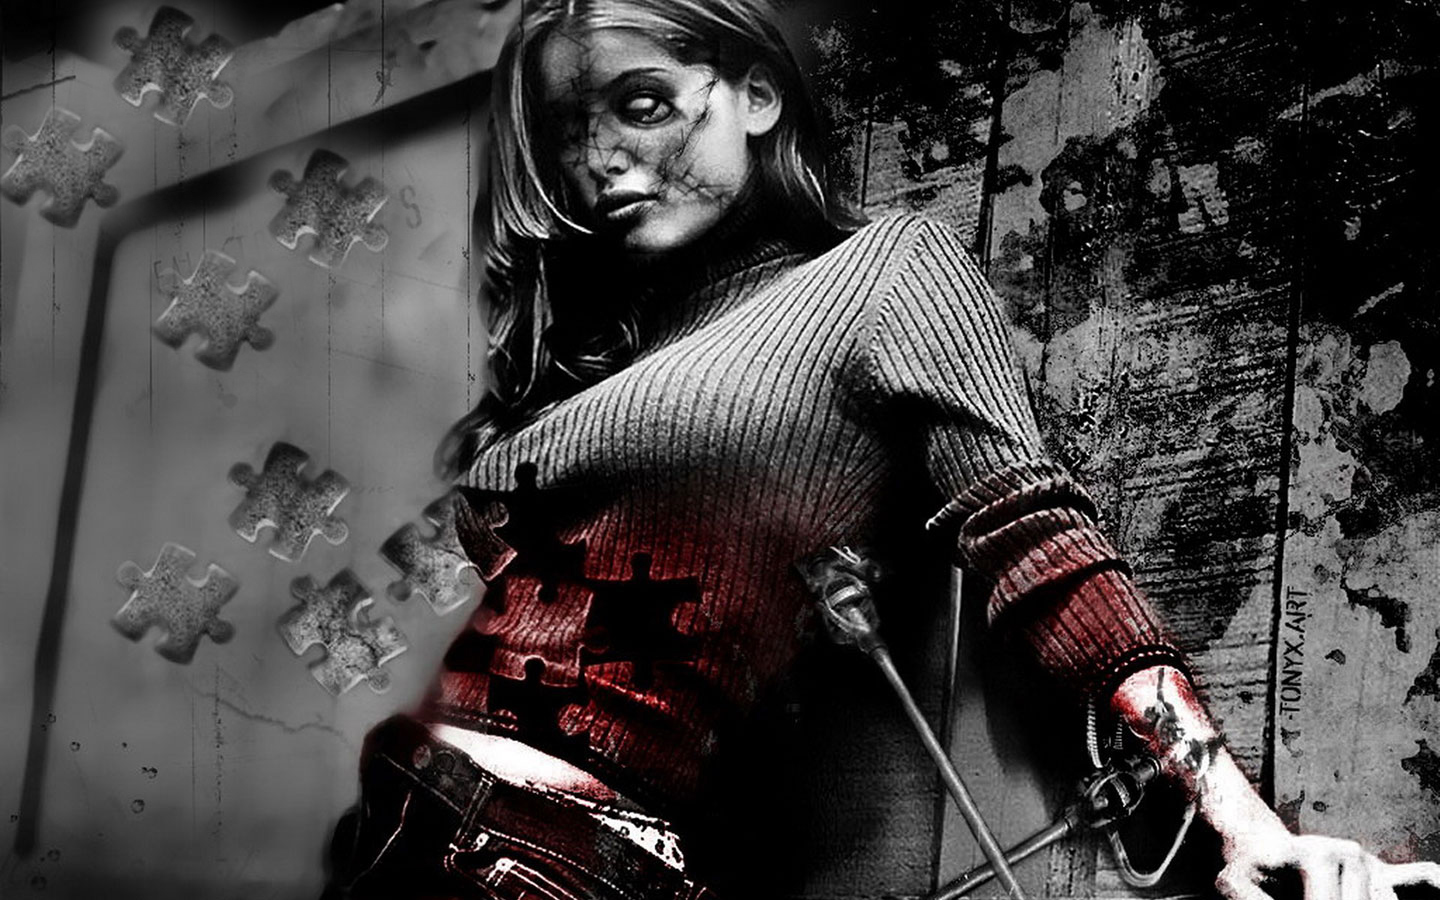 Hd wallpaper zombie - Zombie Girl Hd Desktop Wallpaper Hd Wallpaper